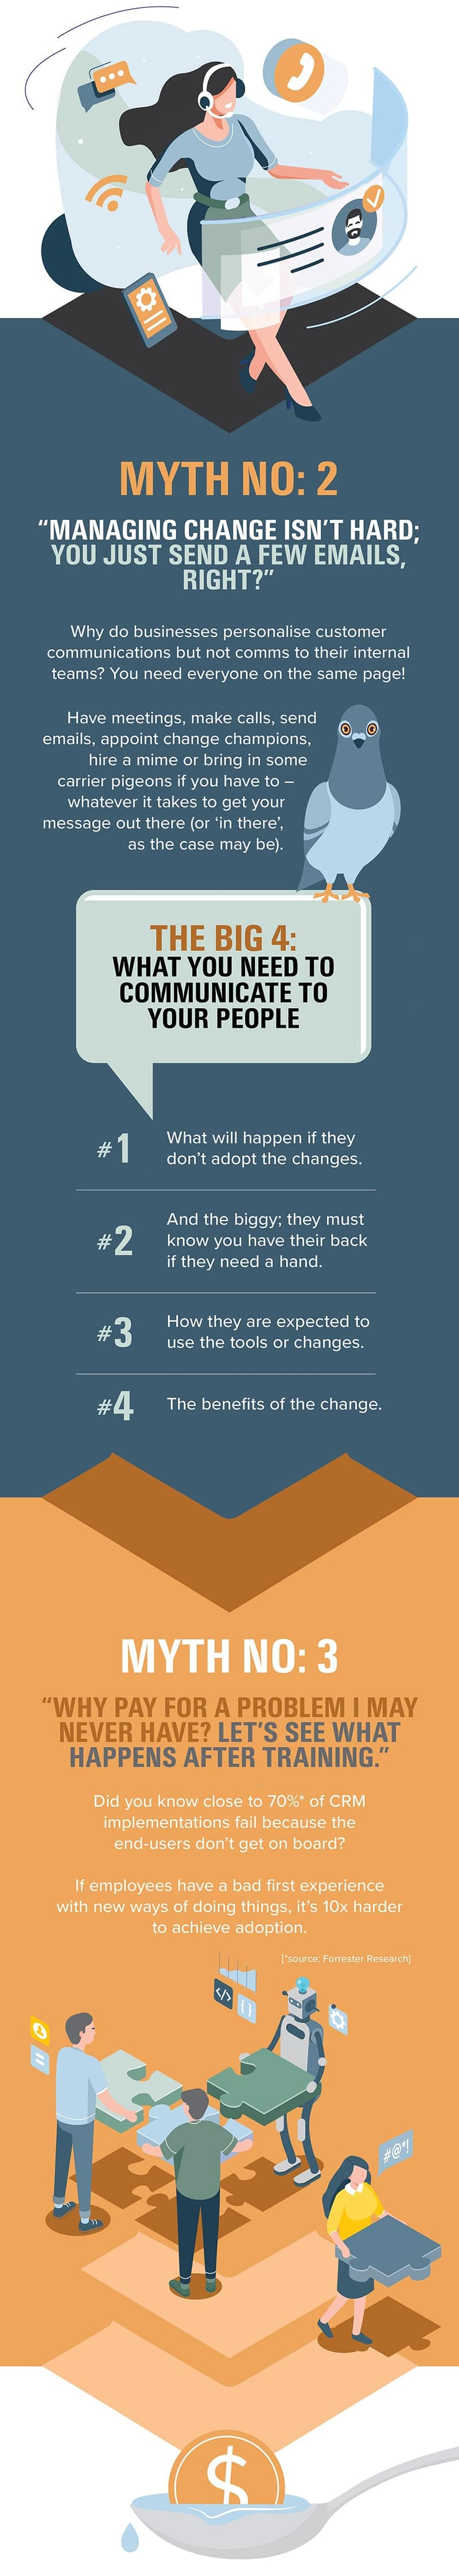 Change Management Infographic 2